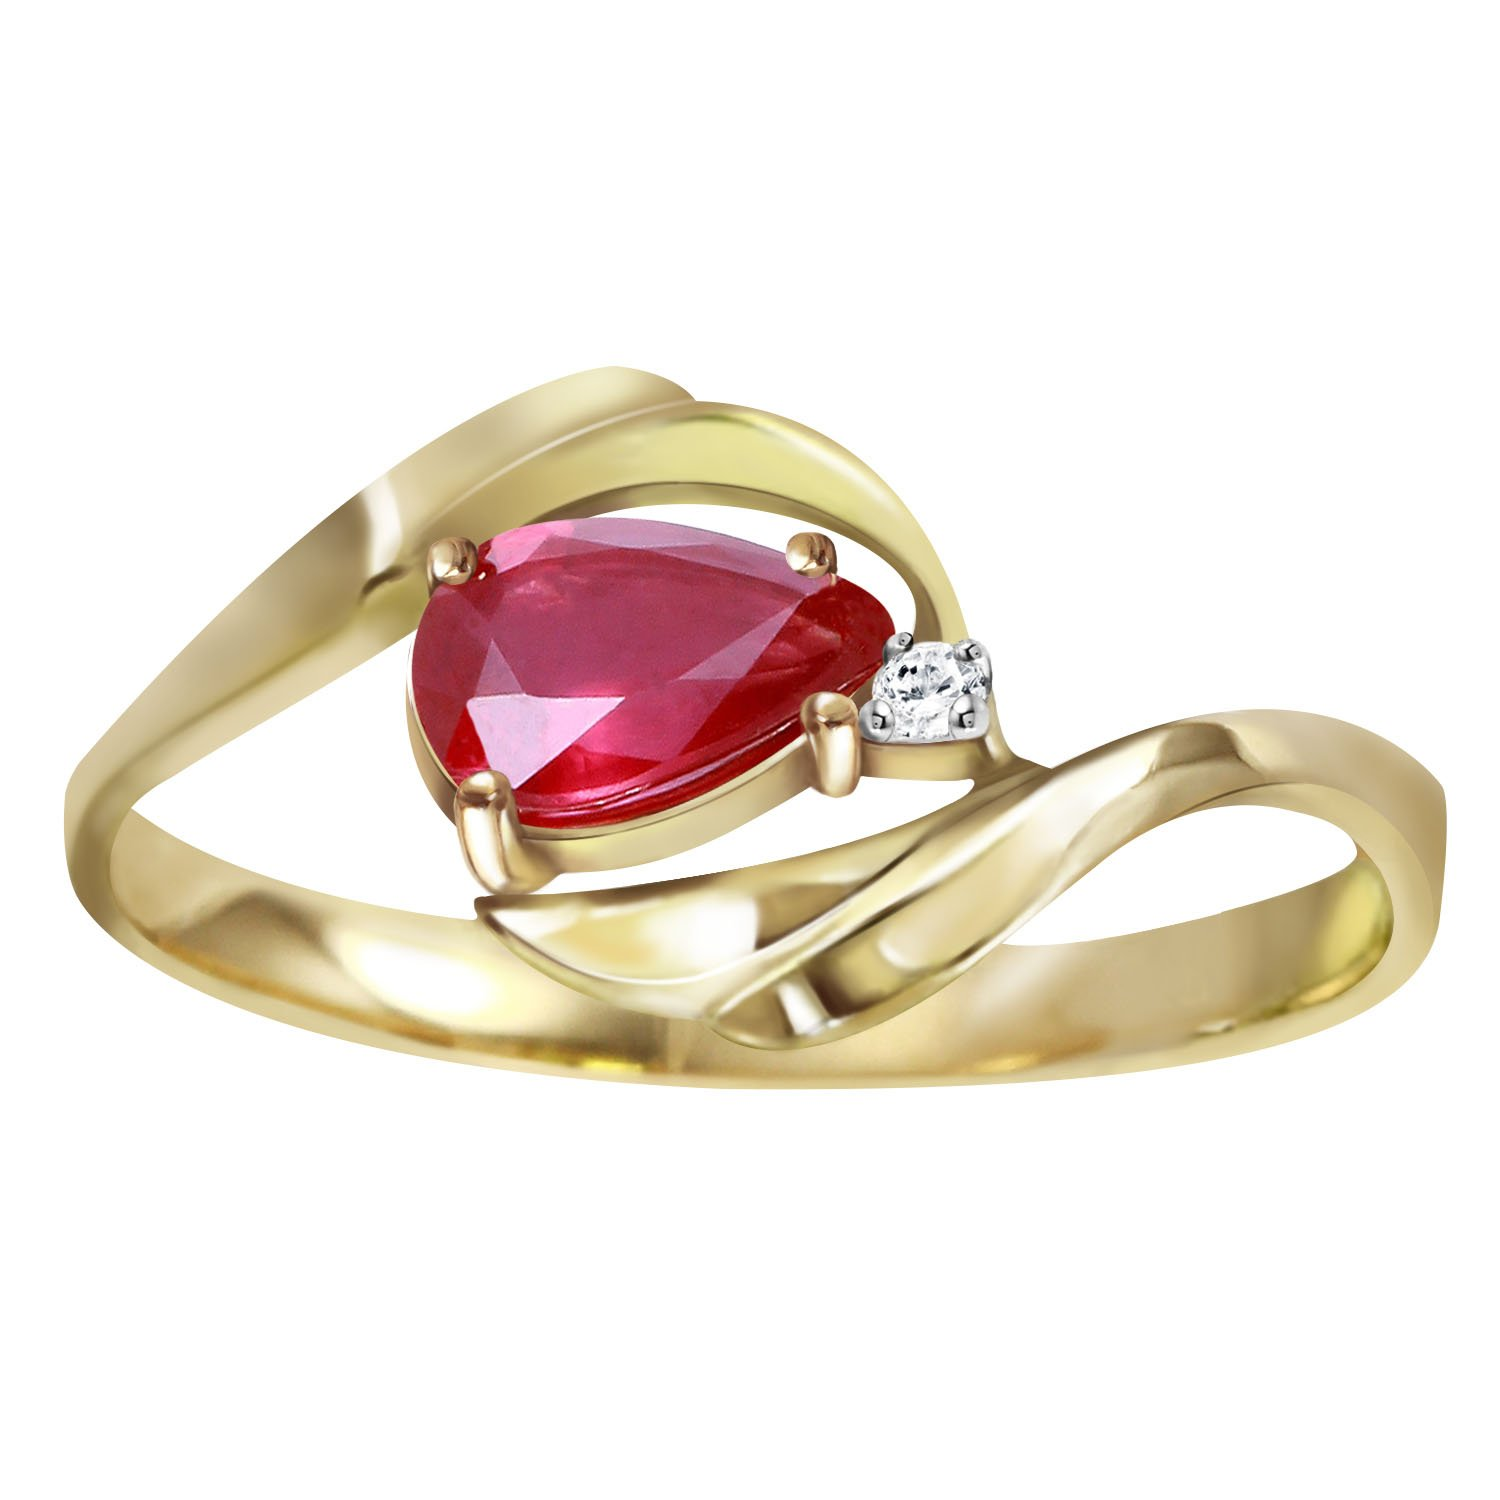 Galaxy Gold 0.51 Carat 14K Yellow Solid Gold Ring with Pear Shape Natural Ruby and Round Diamond (Yellow-Gold, 10) by Galaxy Gold